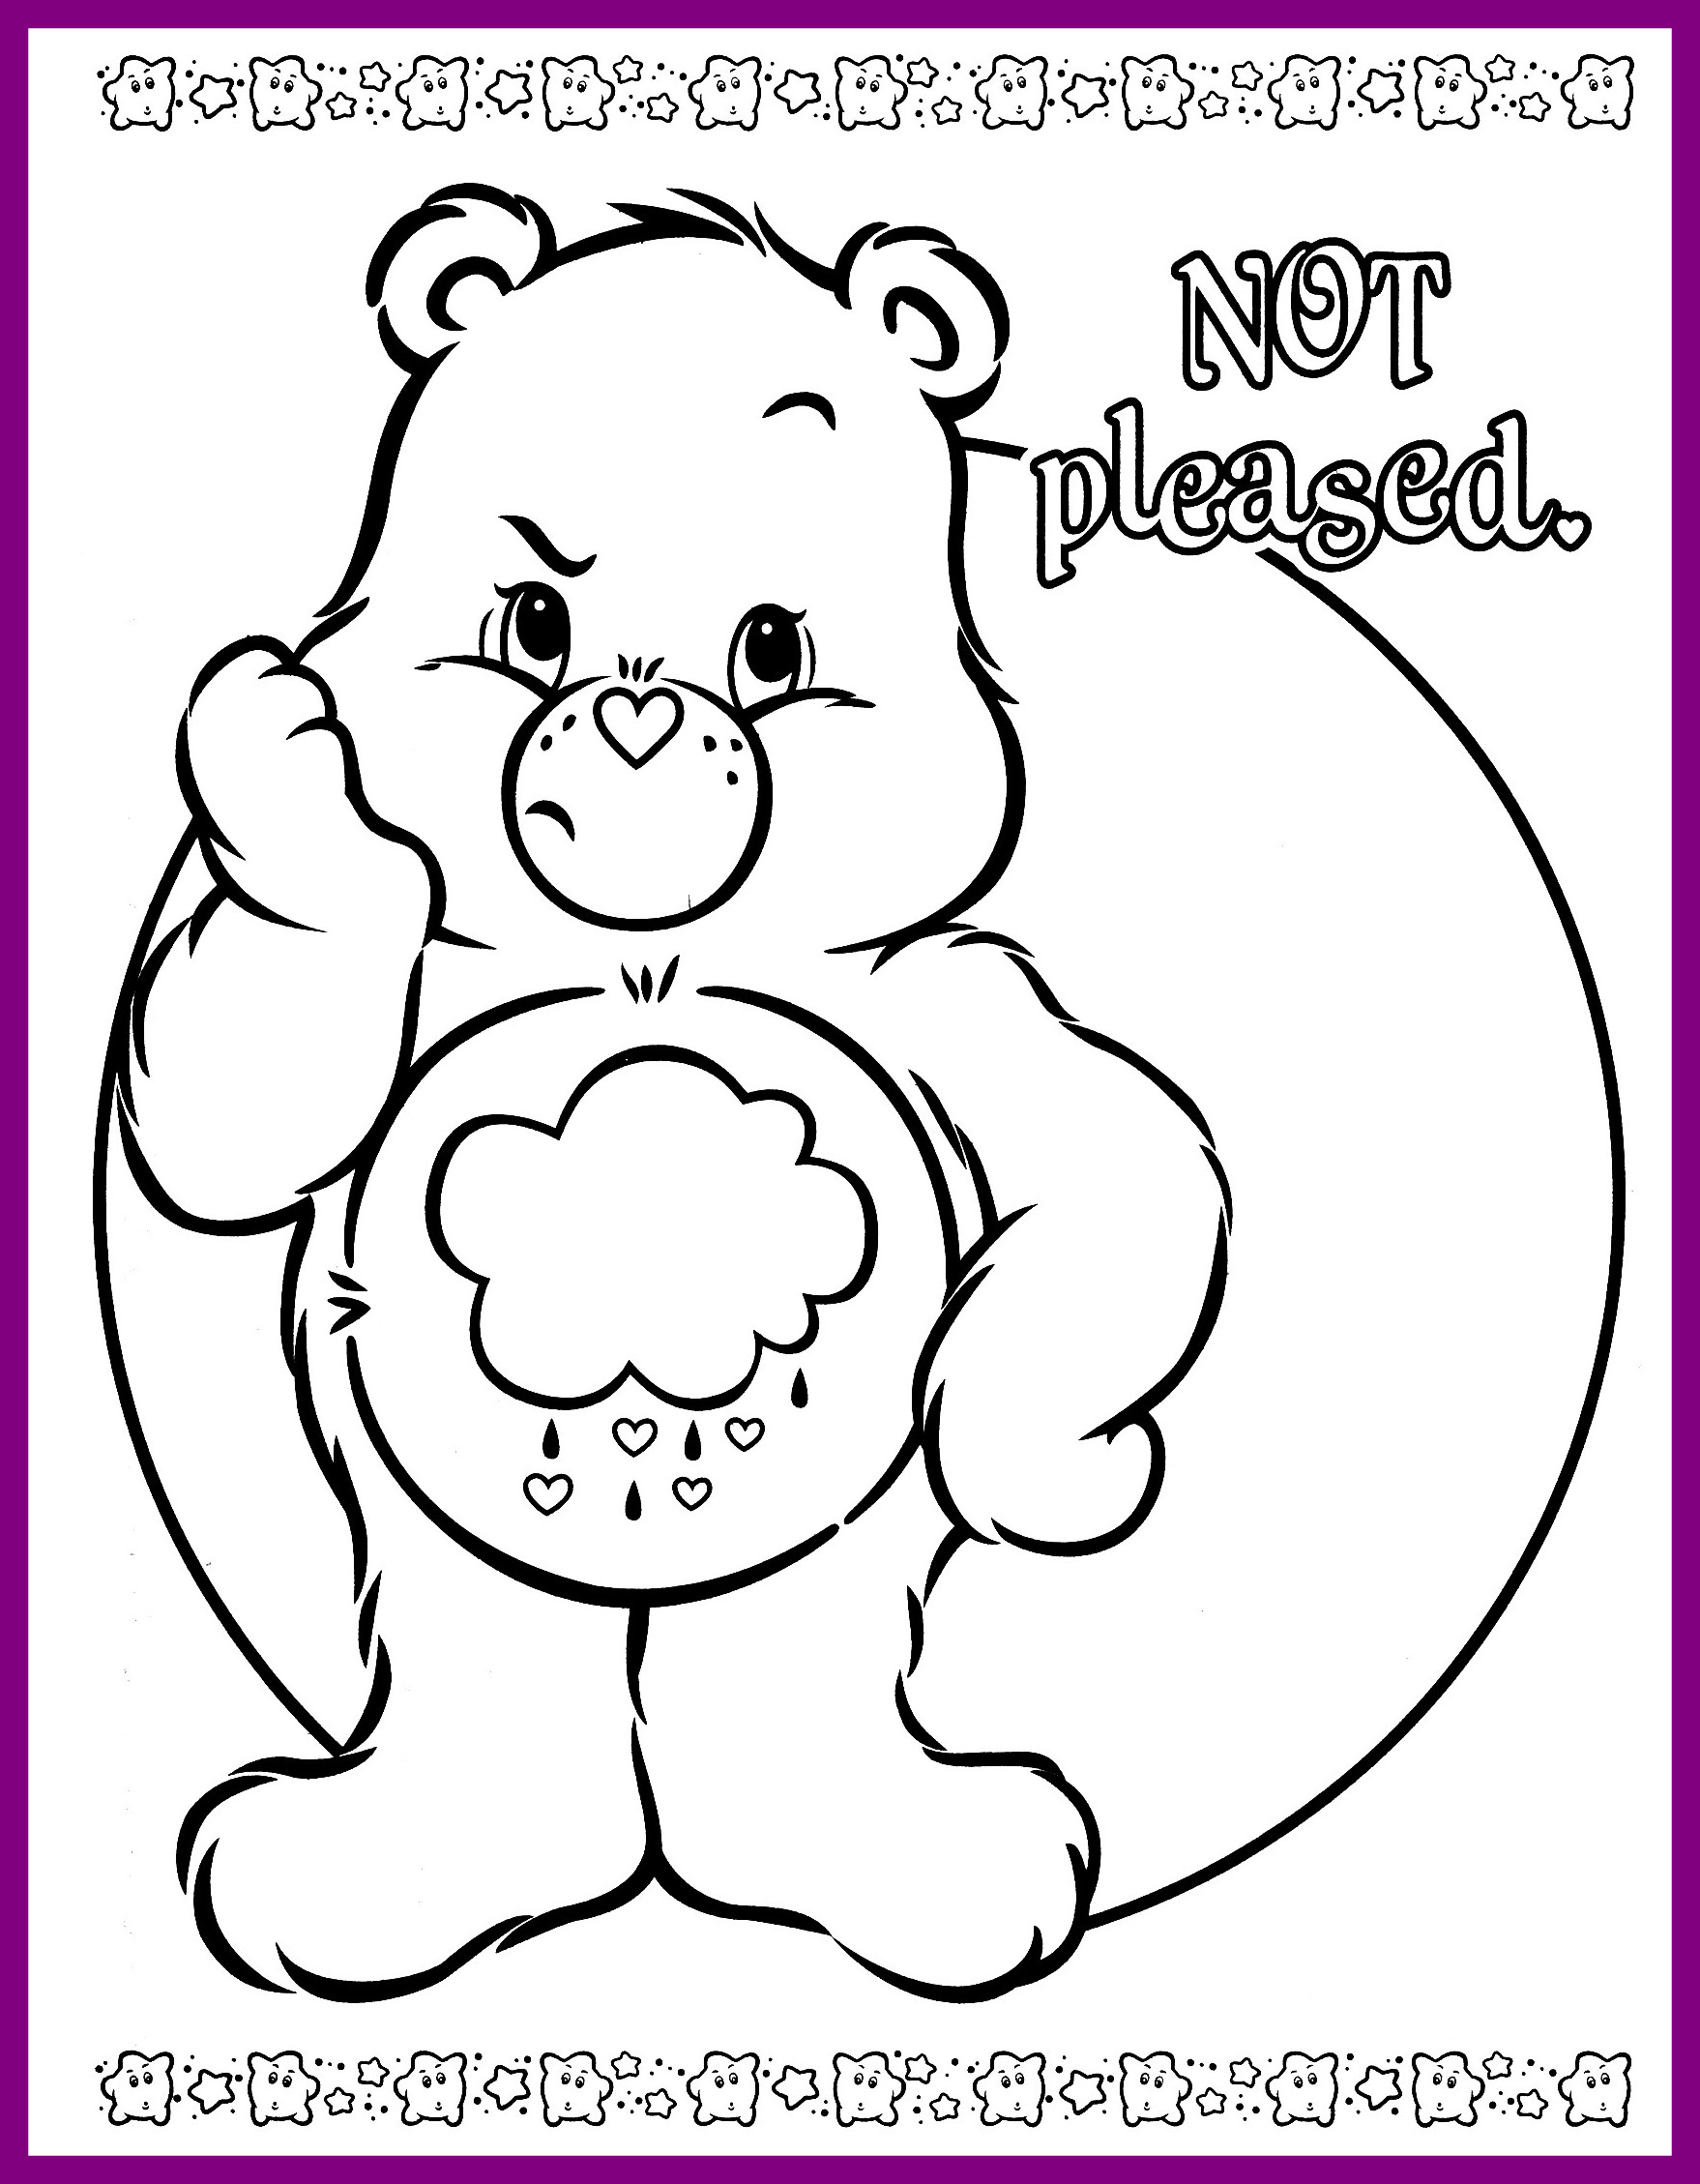 1758x2258 Awesome Care Bear Coloring Pages To And Print For Image Grumpy Cat